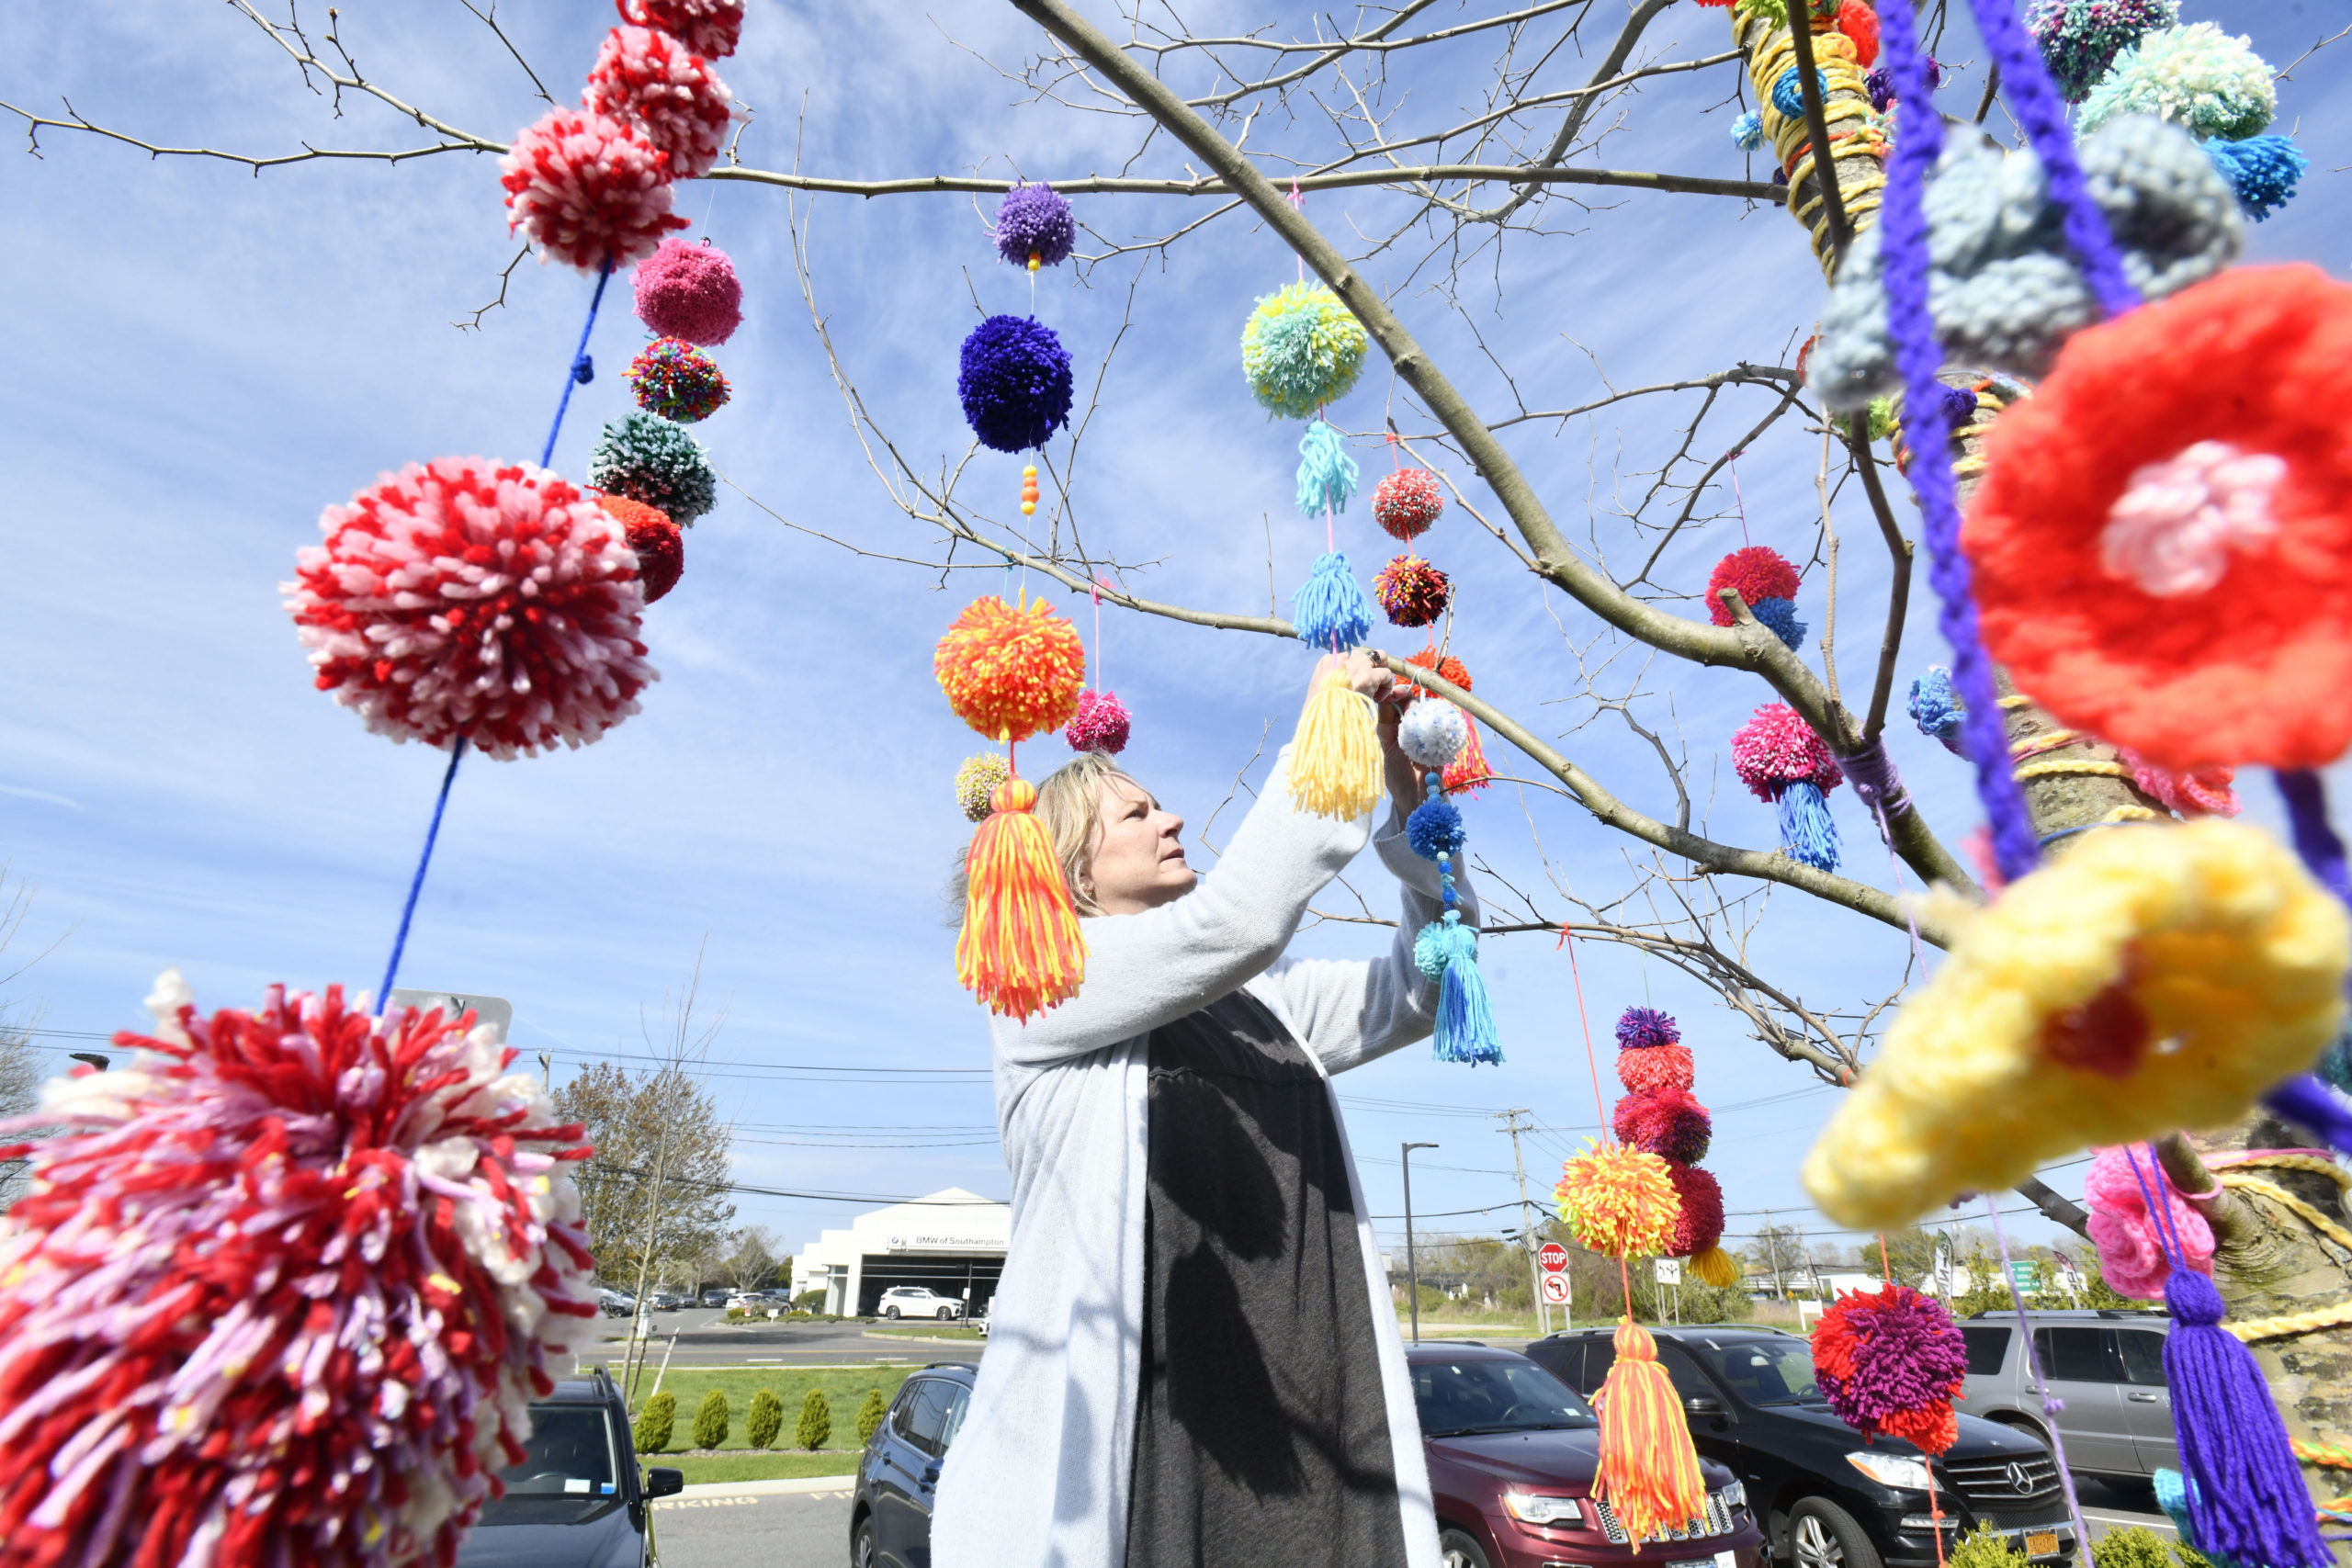 Mary Alyce Rogers hangs yarn tassels from a tree at the Phillips Family Cancer Center on Sunday afternoon. Members of the Coalition for Women's Cancers at Stony Brook Southampton Hospital put up the temporary